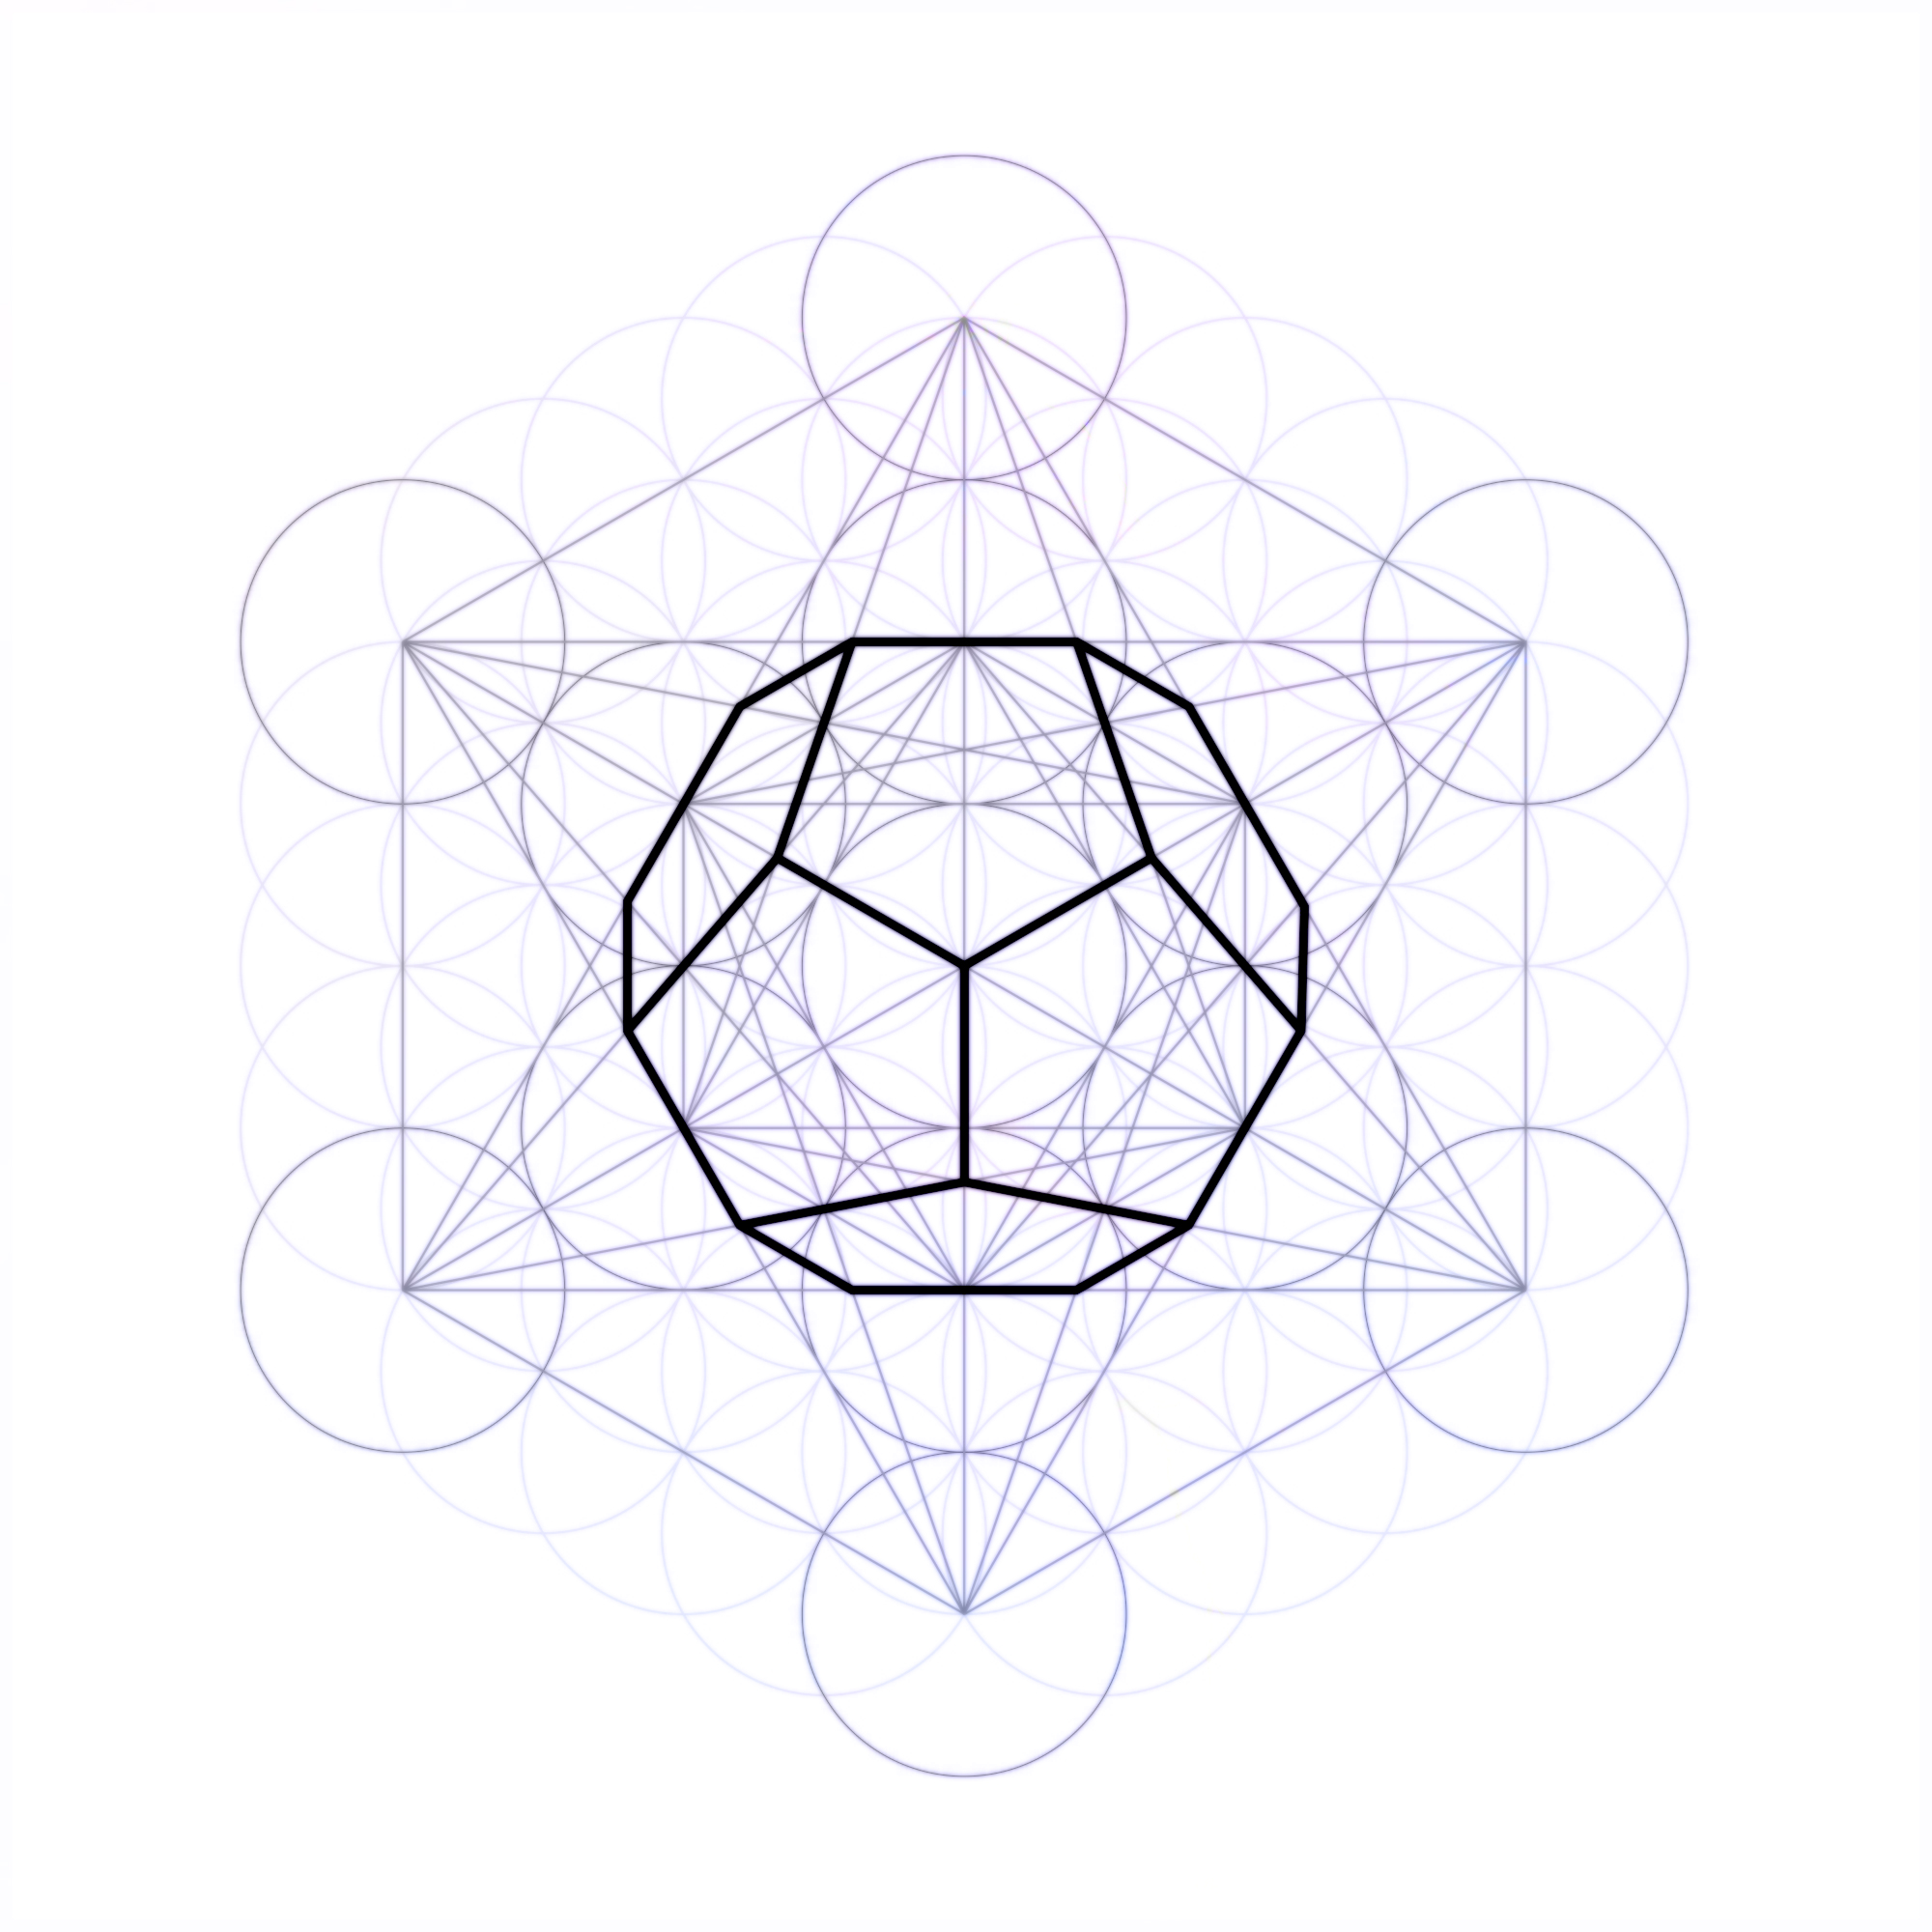 metatrons_dodecahedron_storm